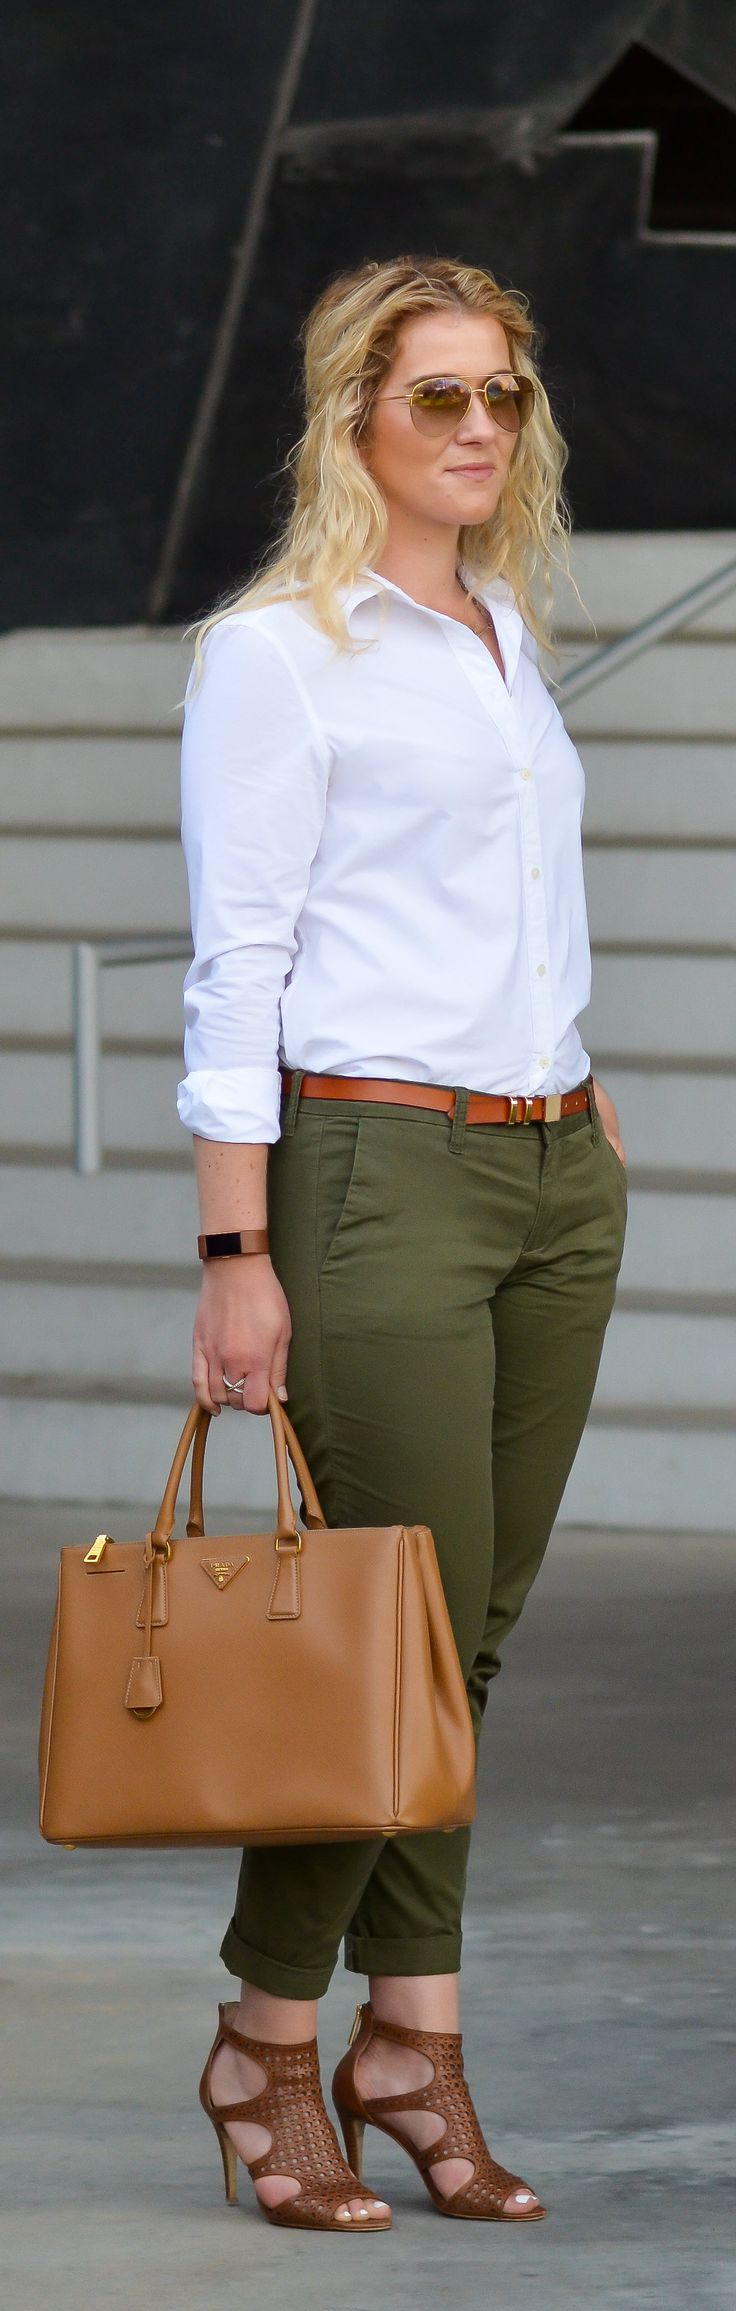 How to Dress Up Olive Green Chinos Women